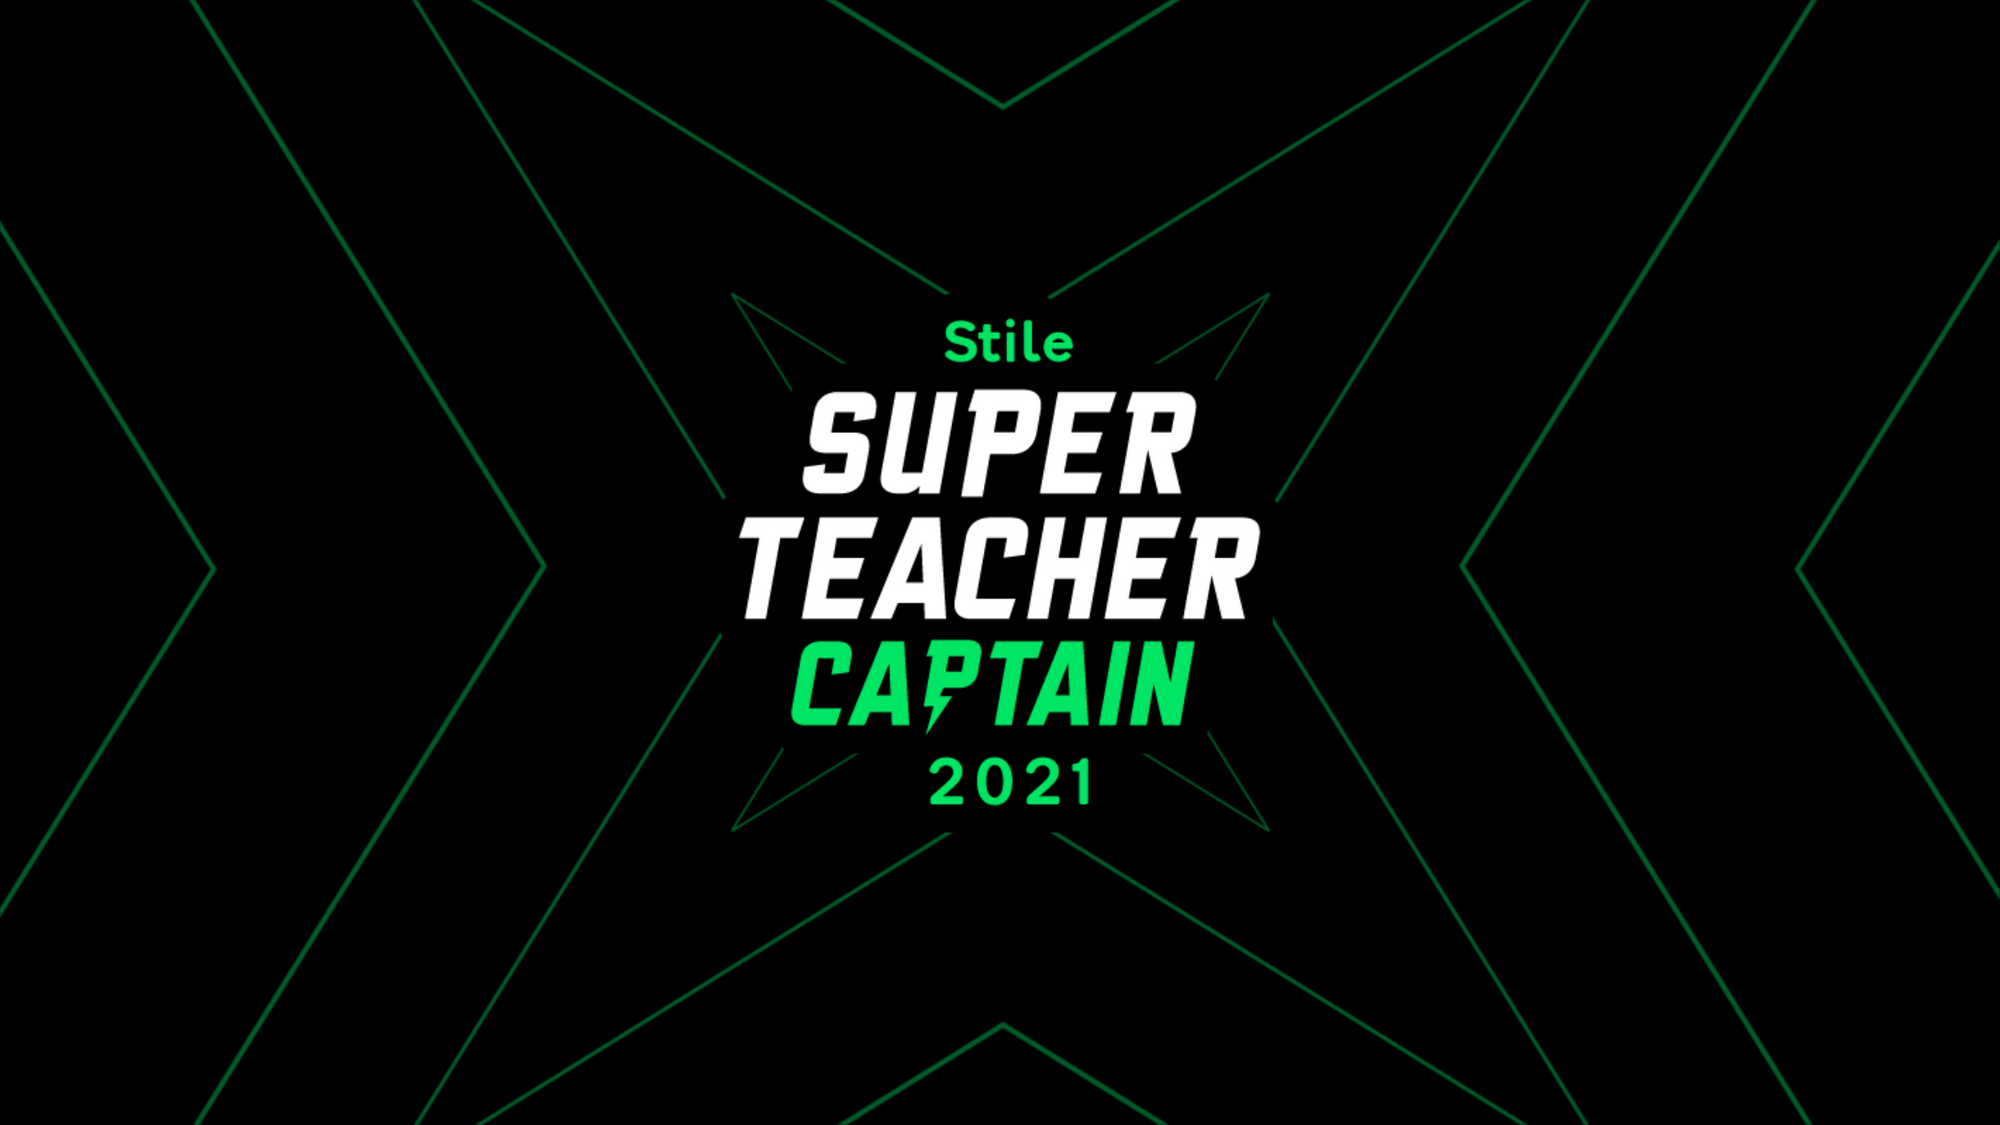 Stile Super Teacher Challenge 2021: Captain Missions